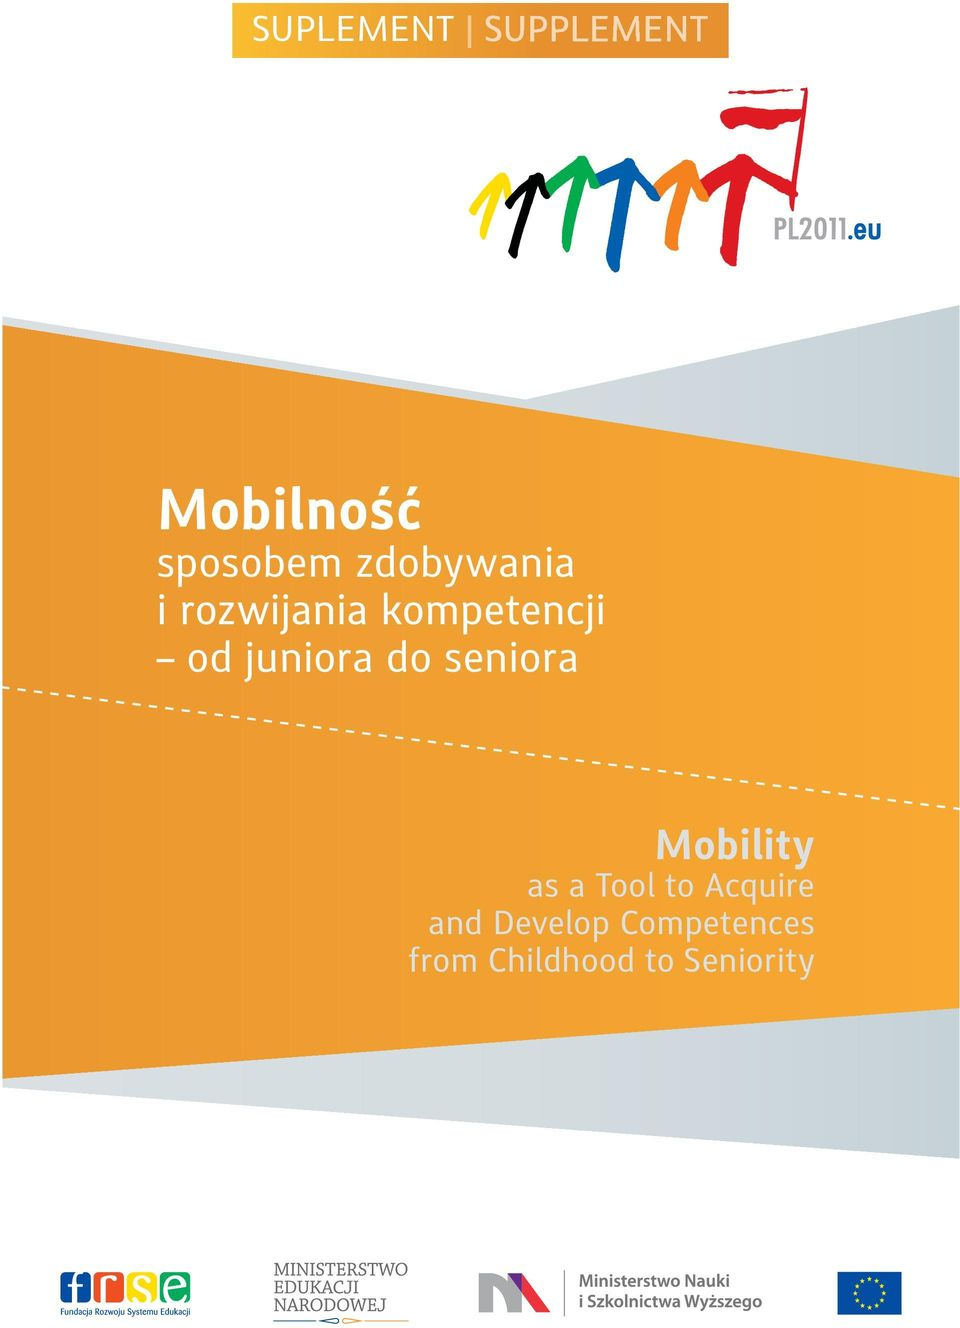 Mobility as a Tool to Acquire and